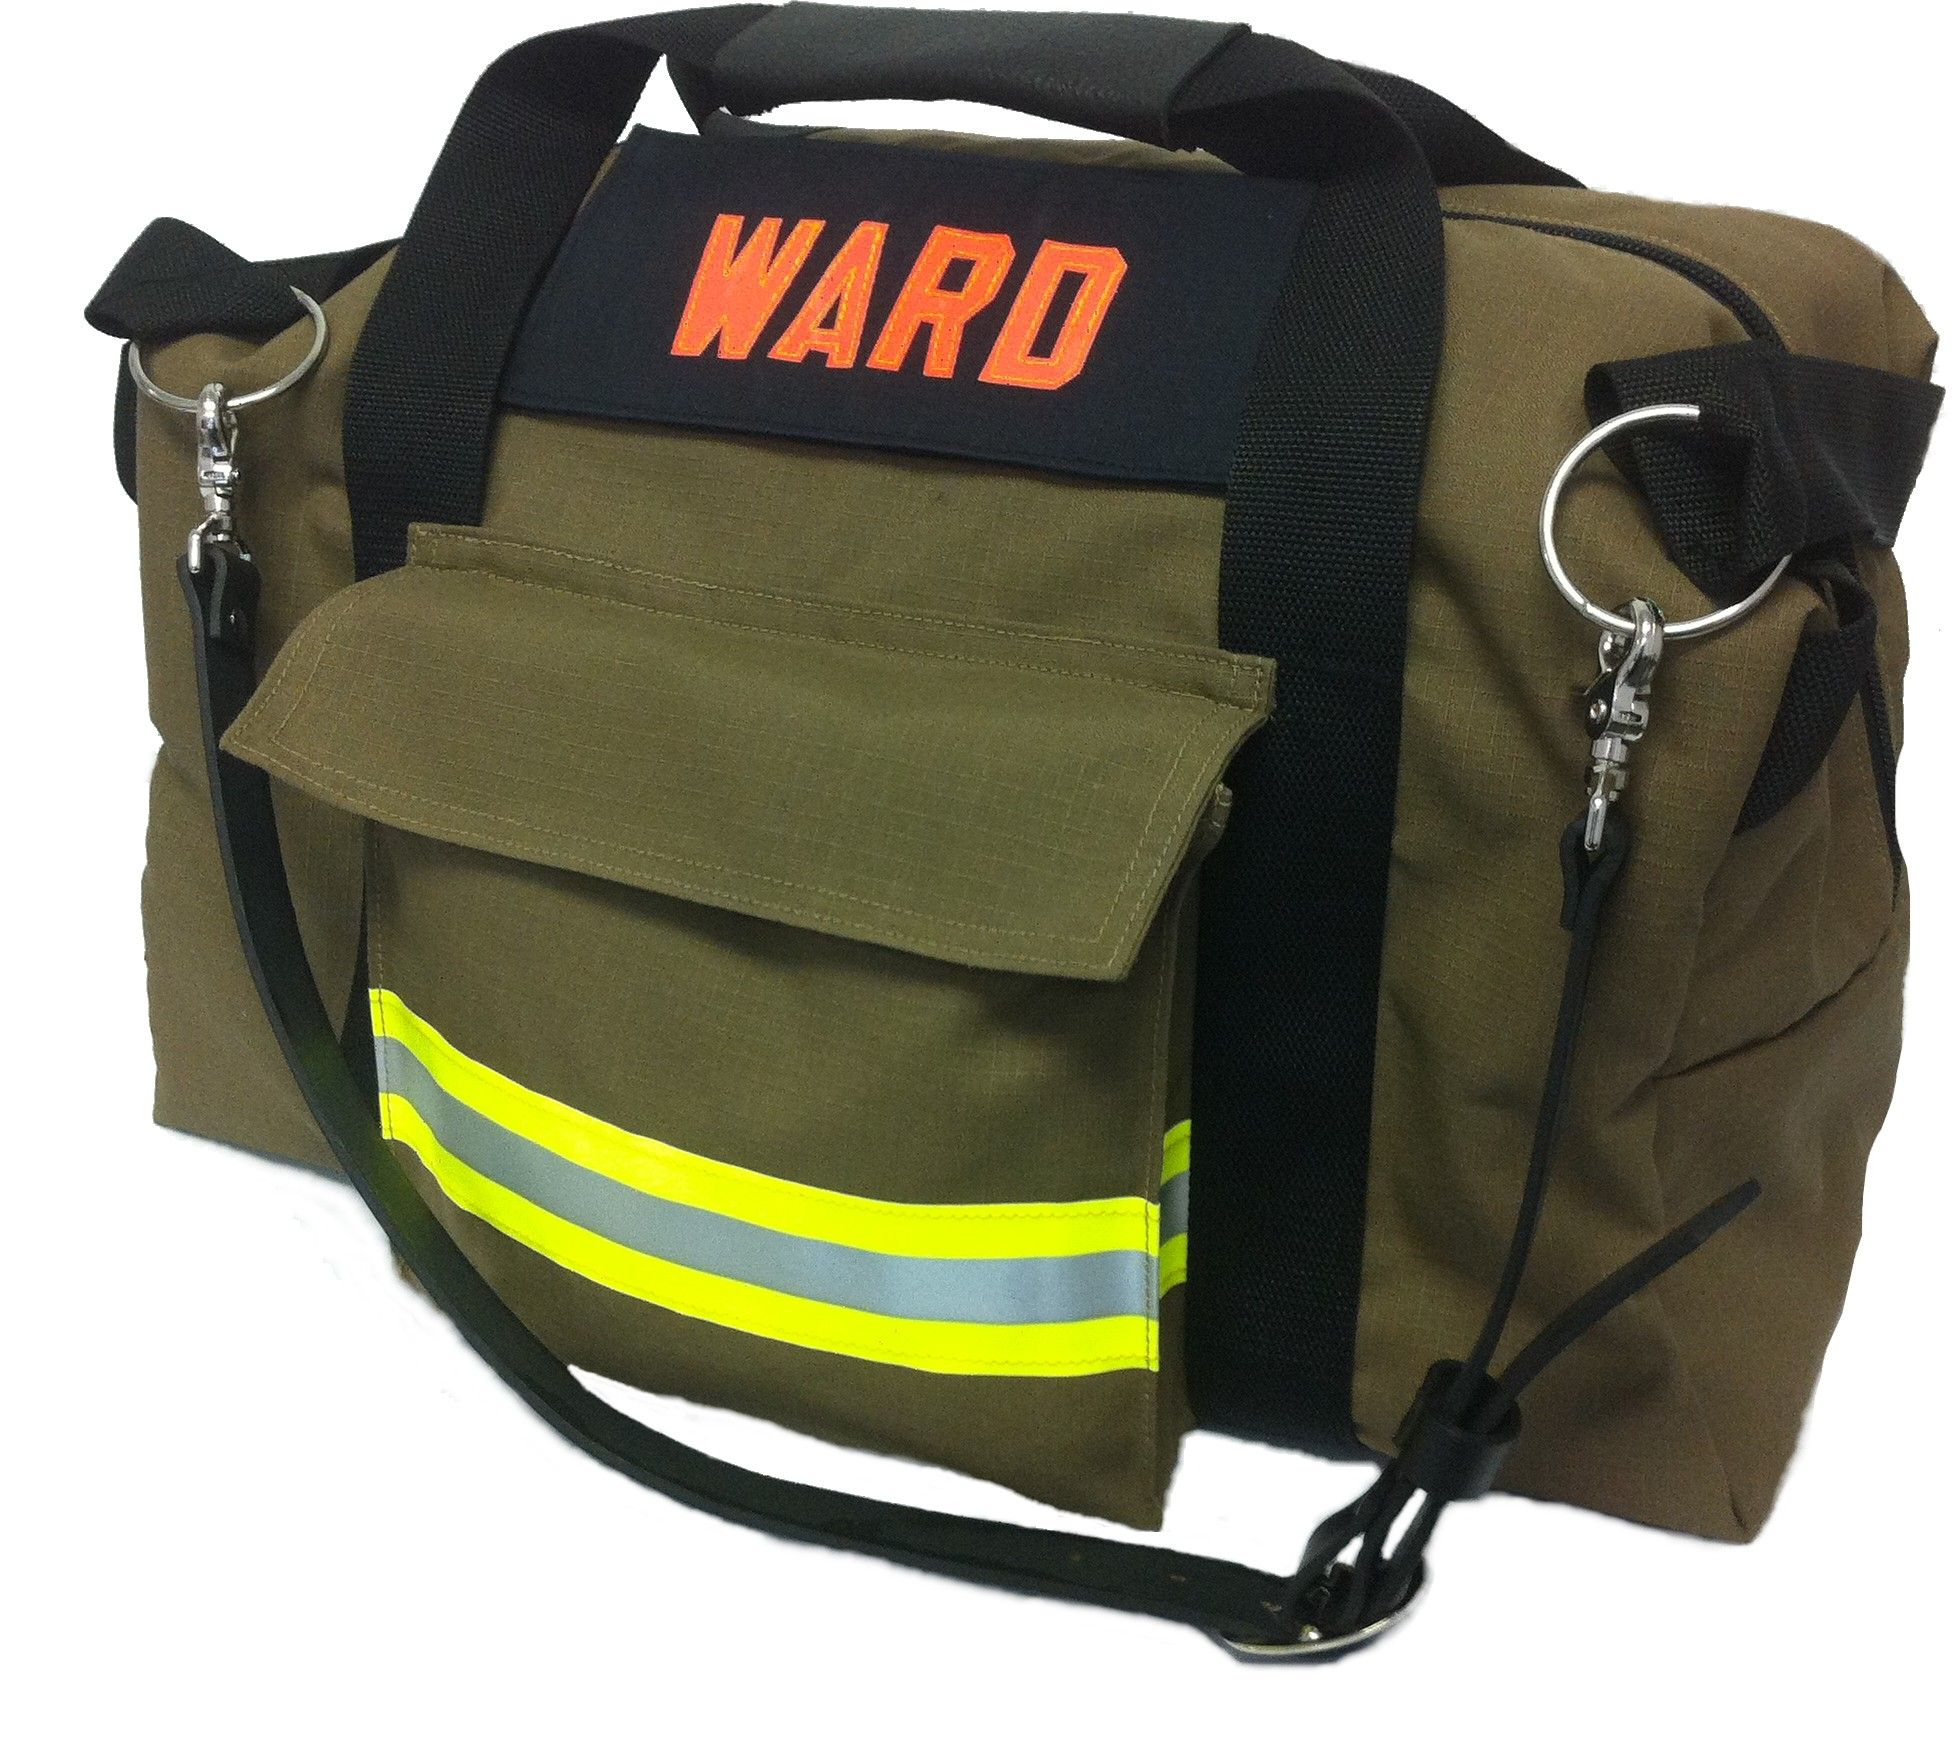 Recycled bunker gear bags - Station Duffle Bag Made From New Advance Ripstop Outer Shell Turnout Gear Fabric